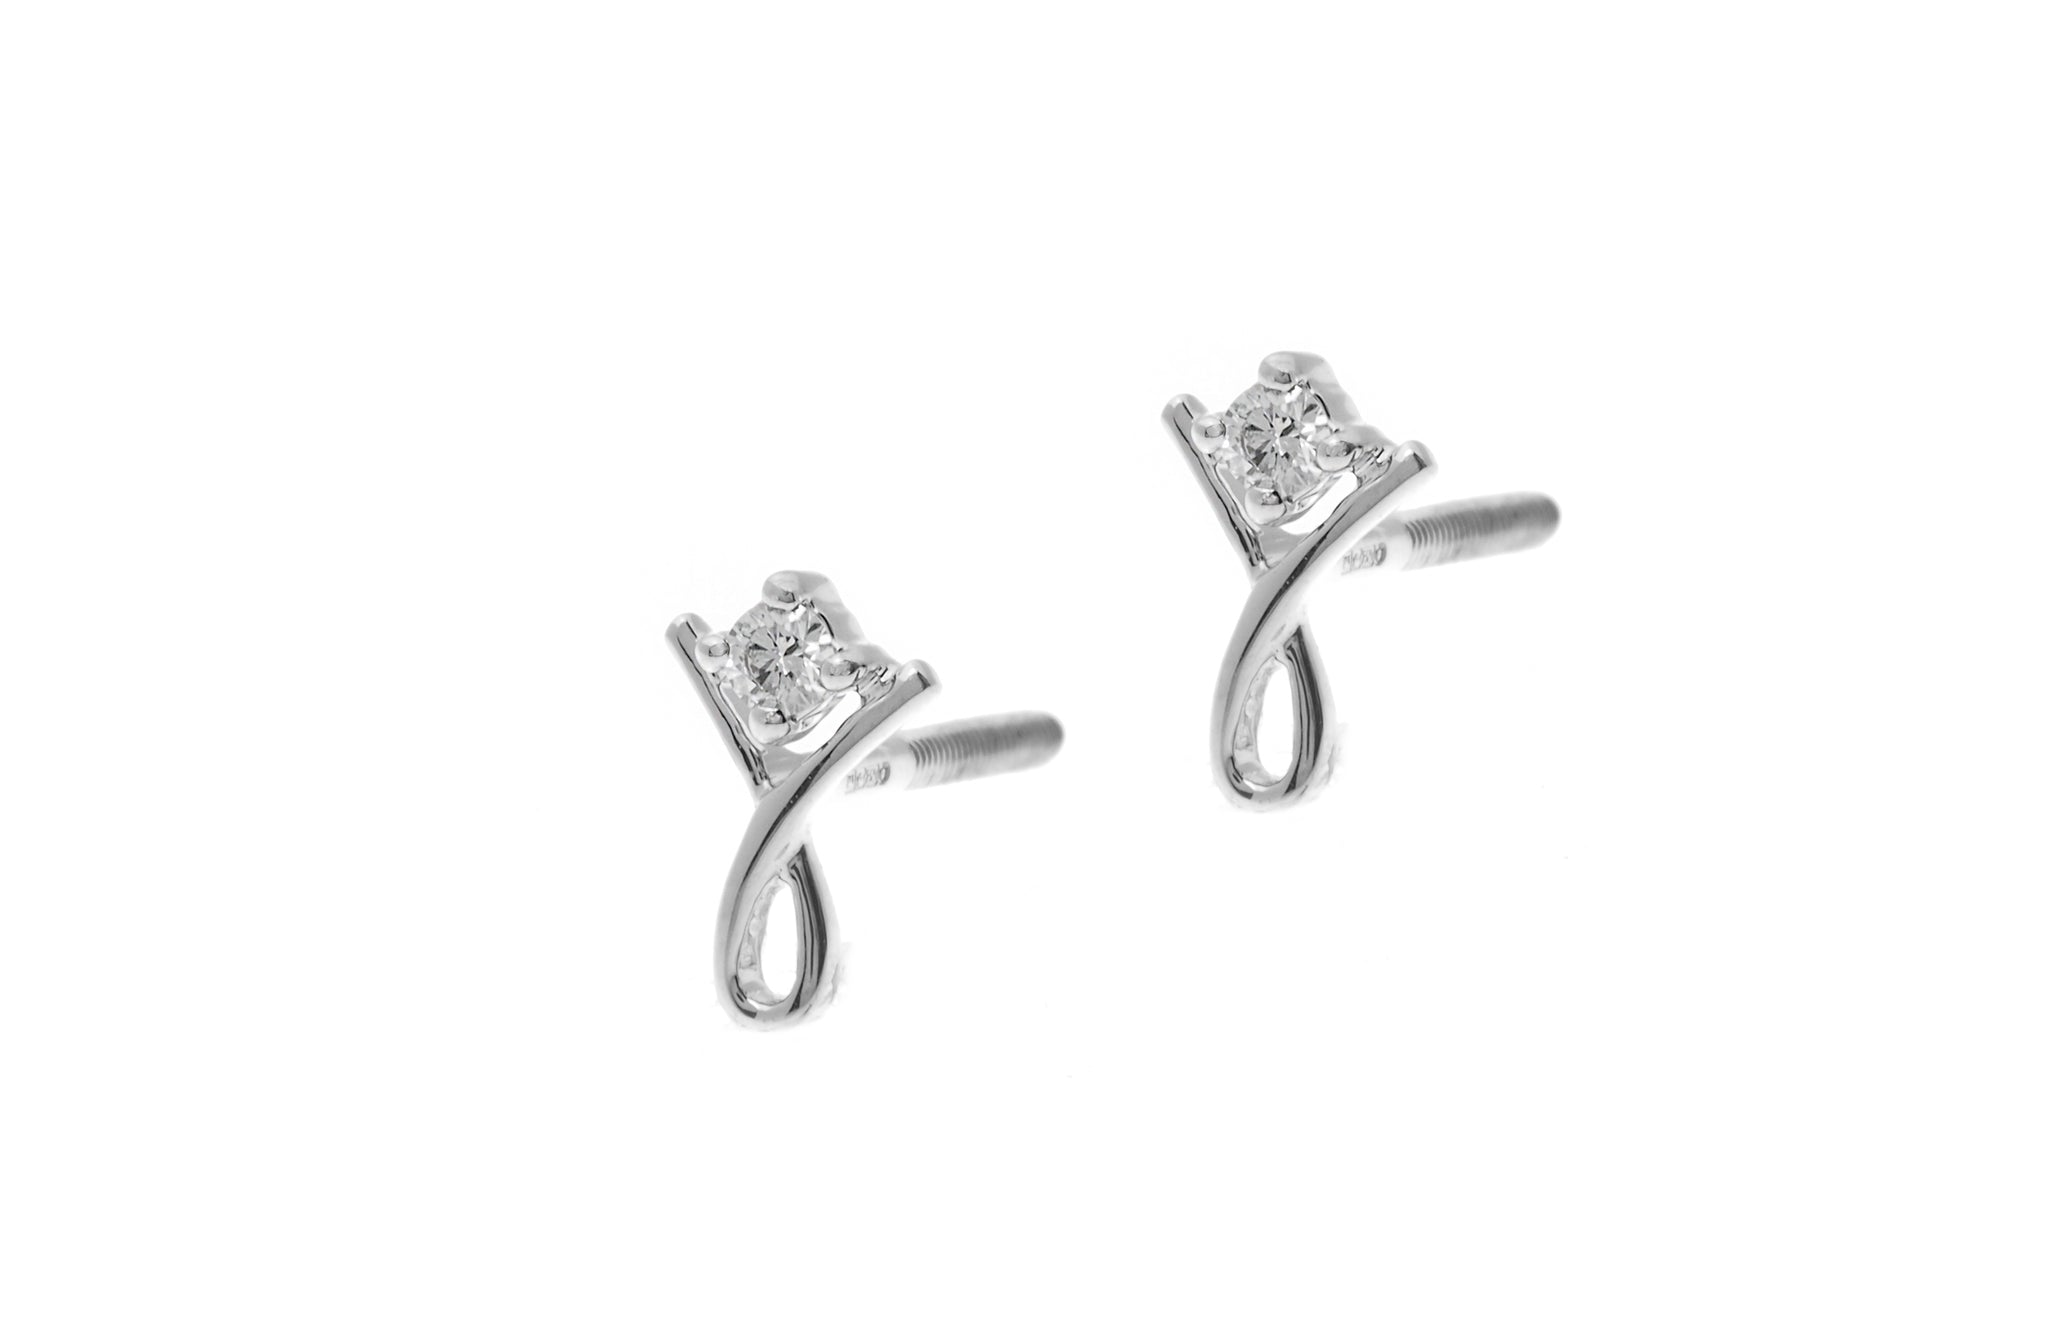 18ct White Gold 0.05ct Diamond Stud Earrings (MCS26342)